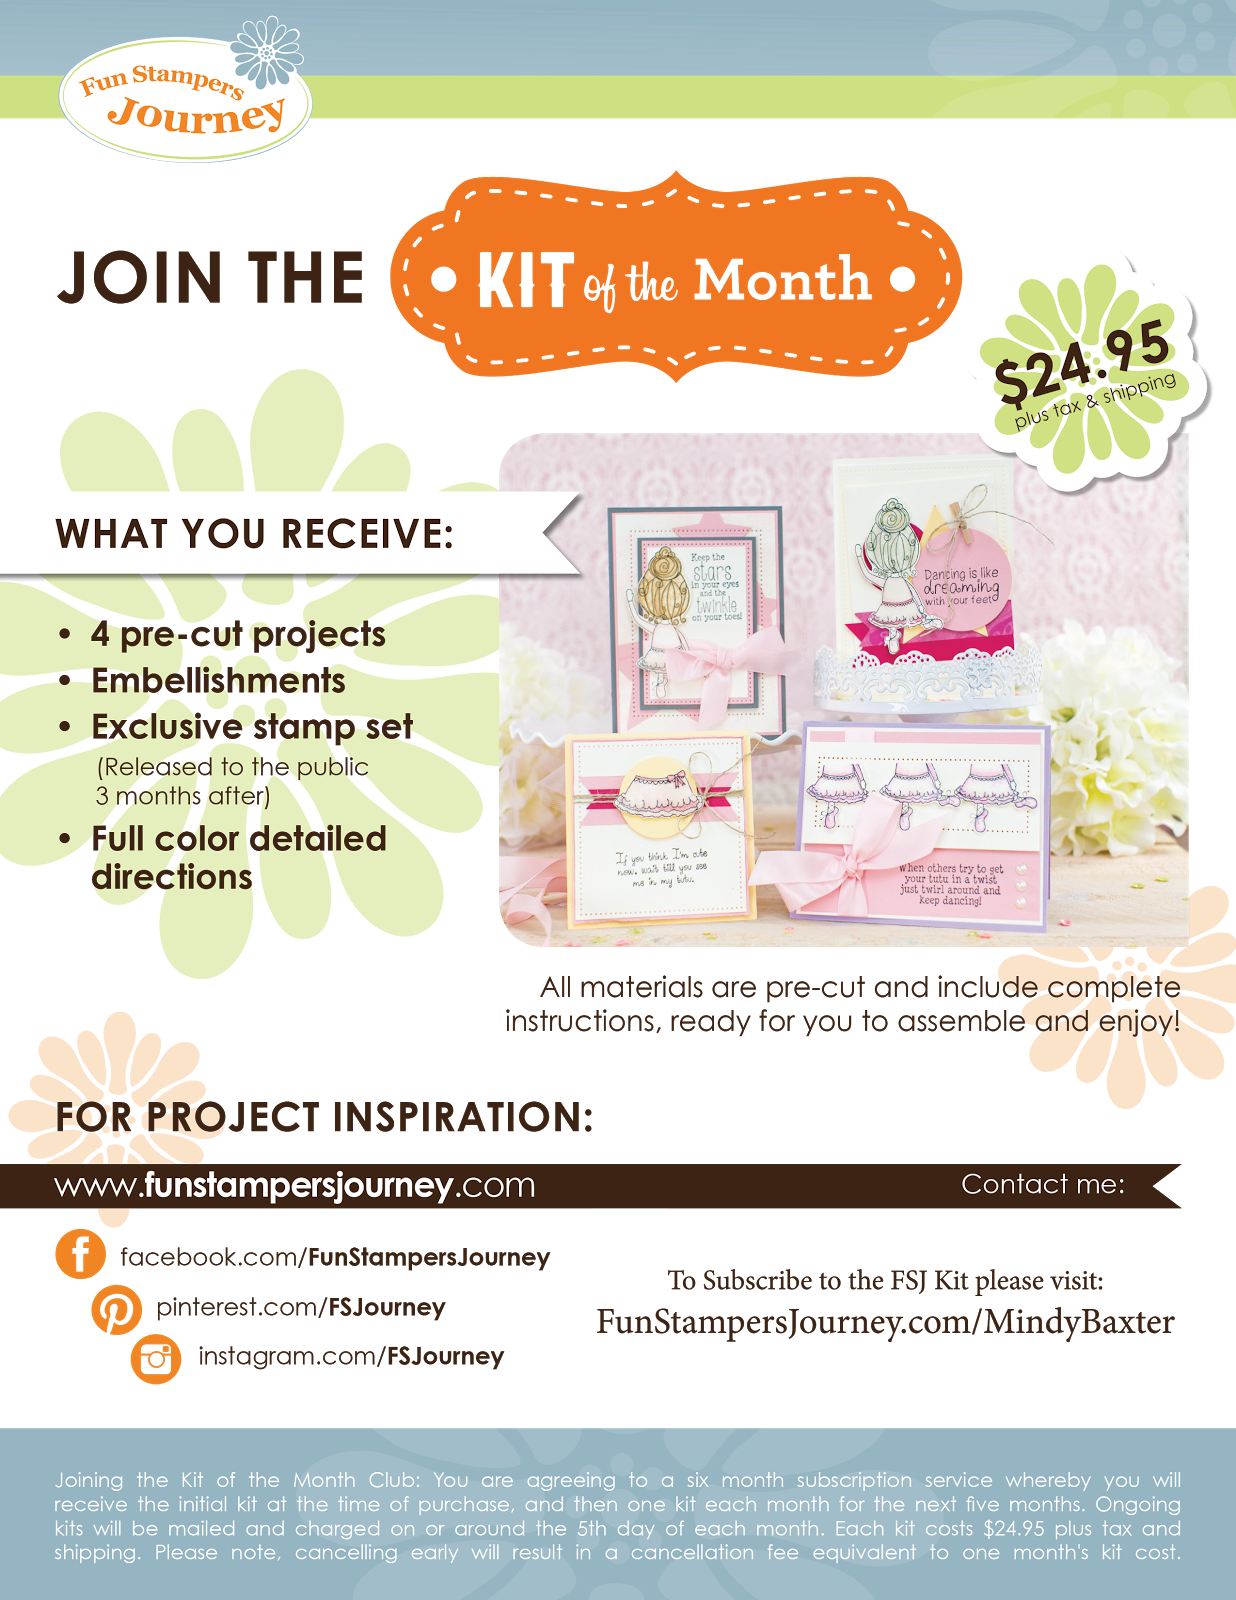 Fun Stampers Journey Kit of the Month